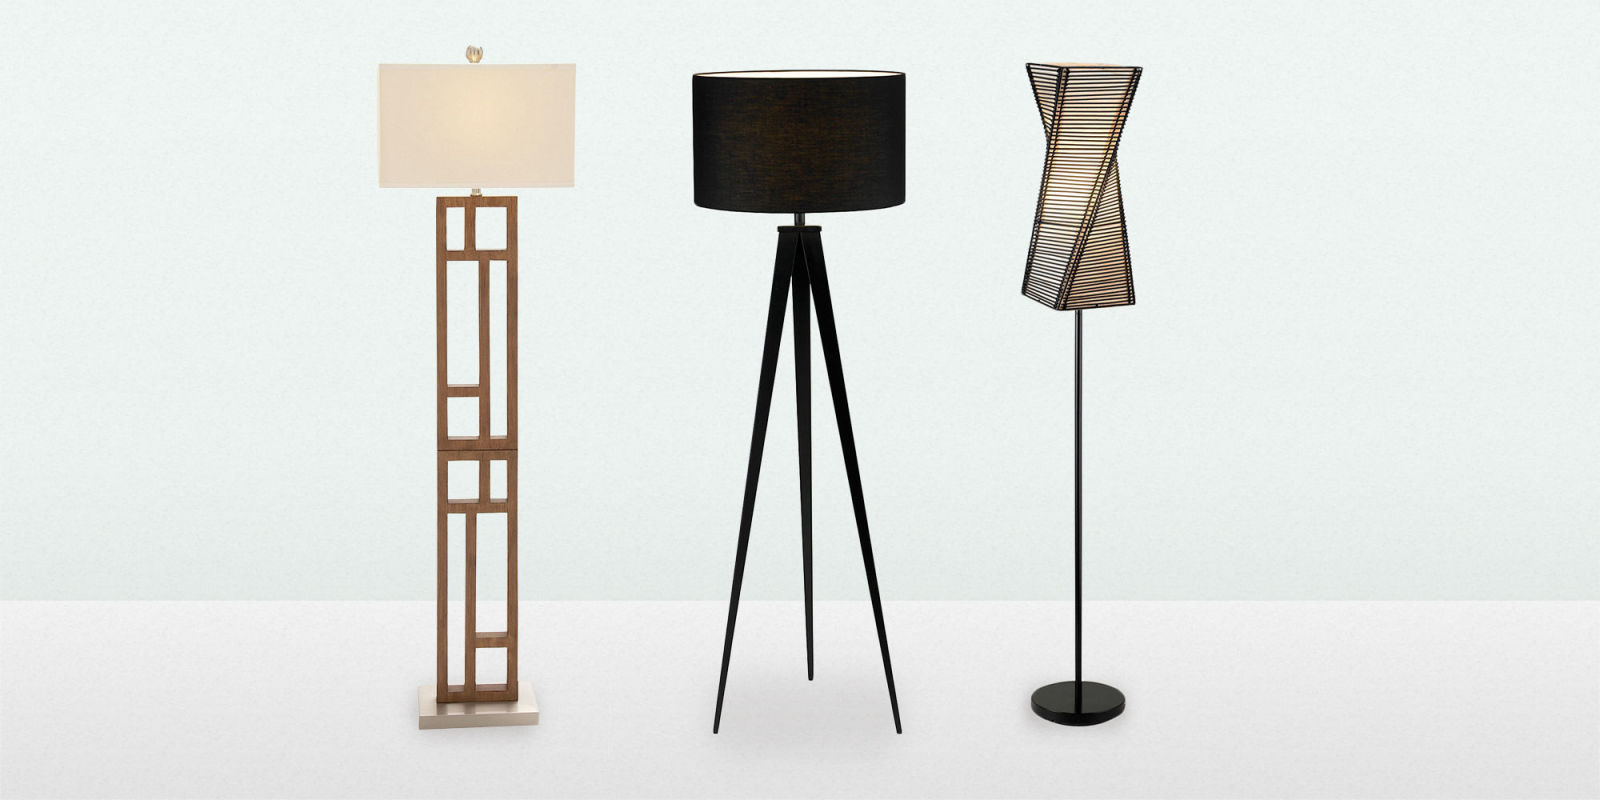 13 Best Standing Floor Lamps in 2017 - Modern Floor Lamps for Any Room